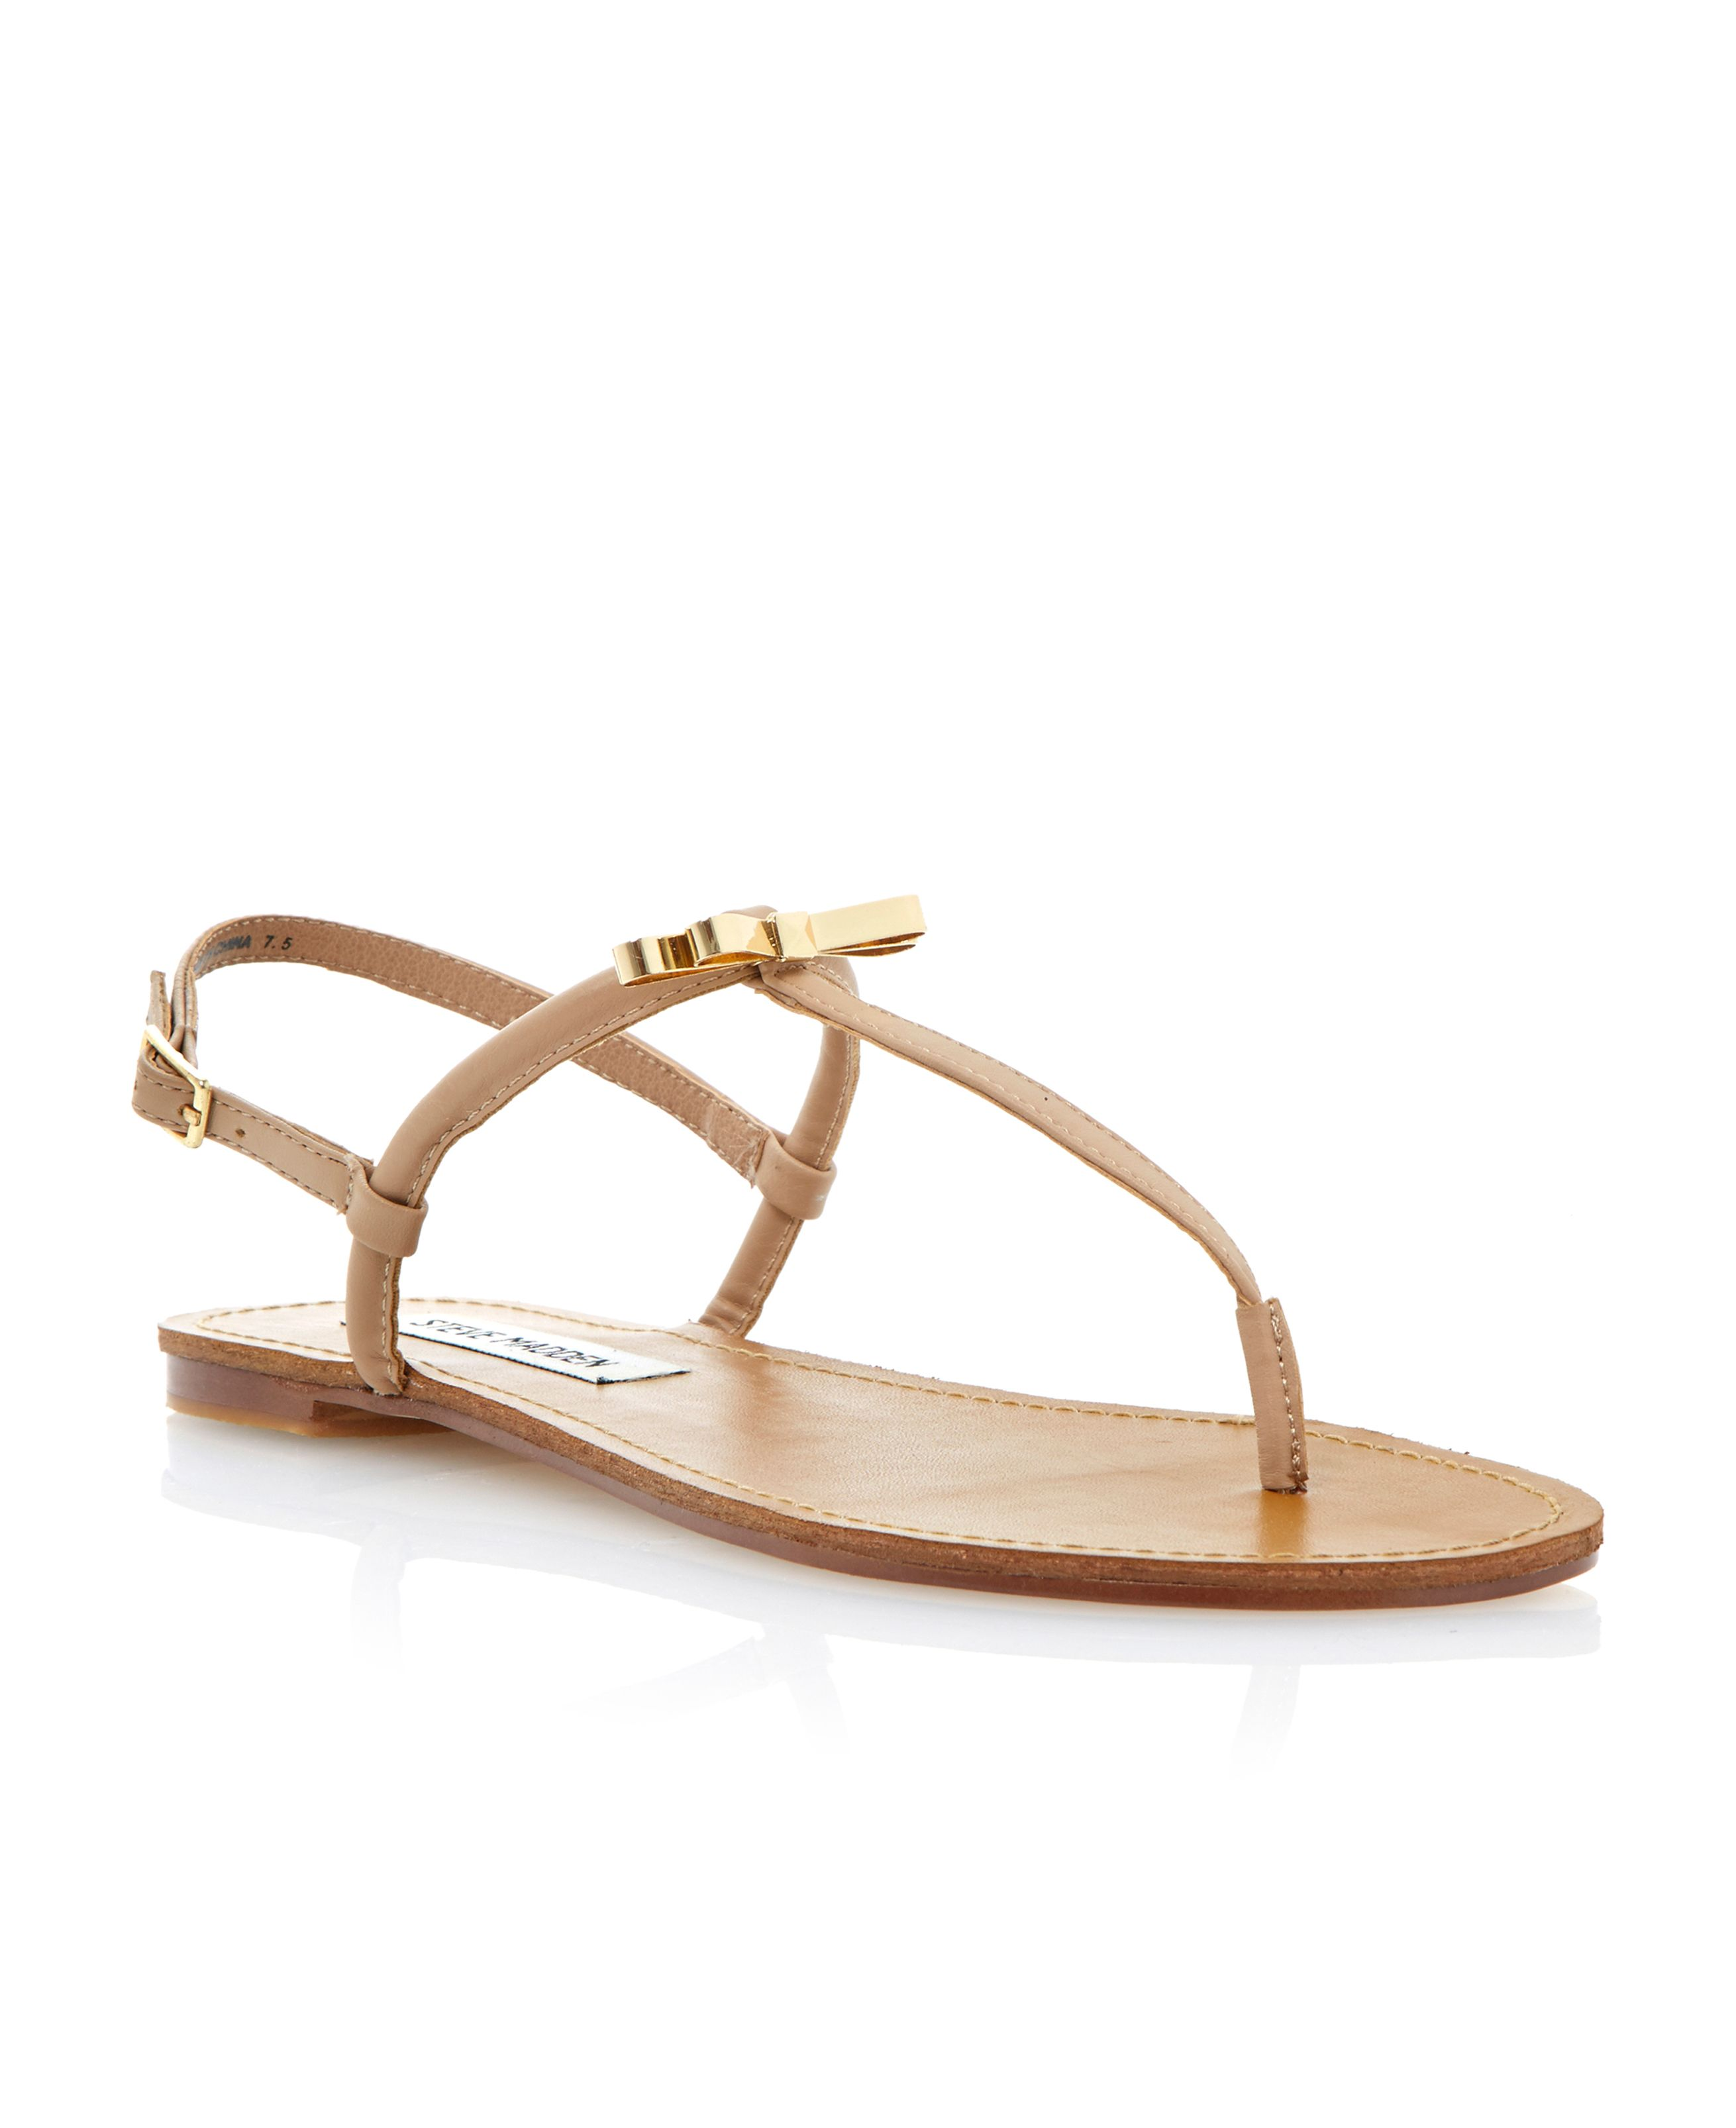 Daisey toe post sandals